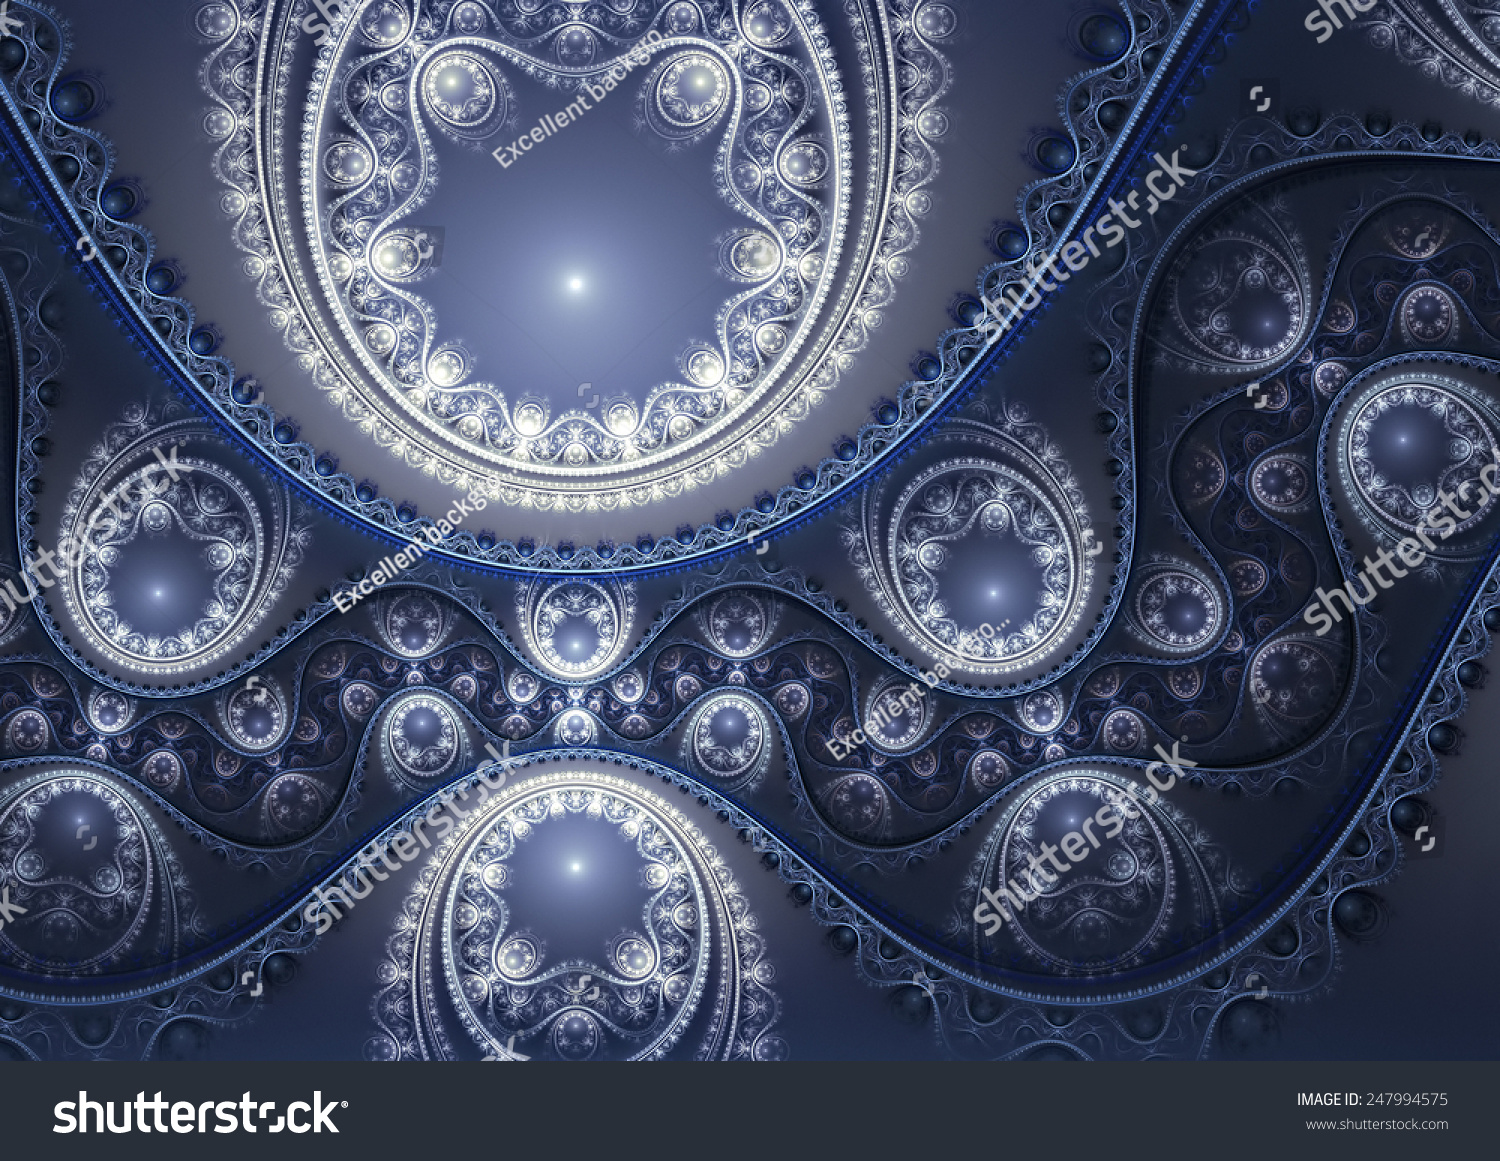 abstract ornate blue background luxury winter stock illustration abstract ornate blue background luxury winter pattern beautiful decoration for desktop cover